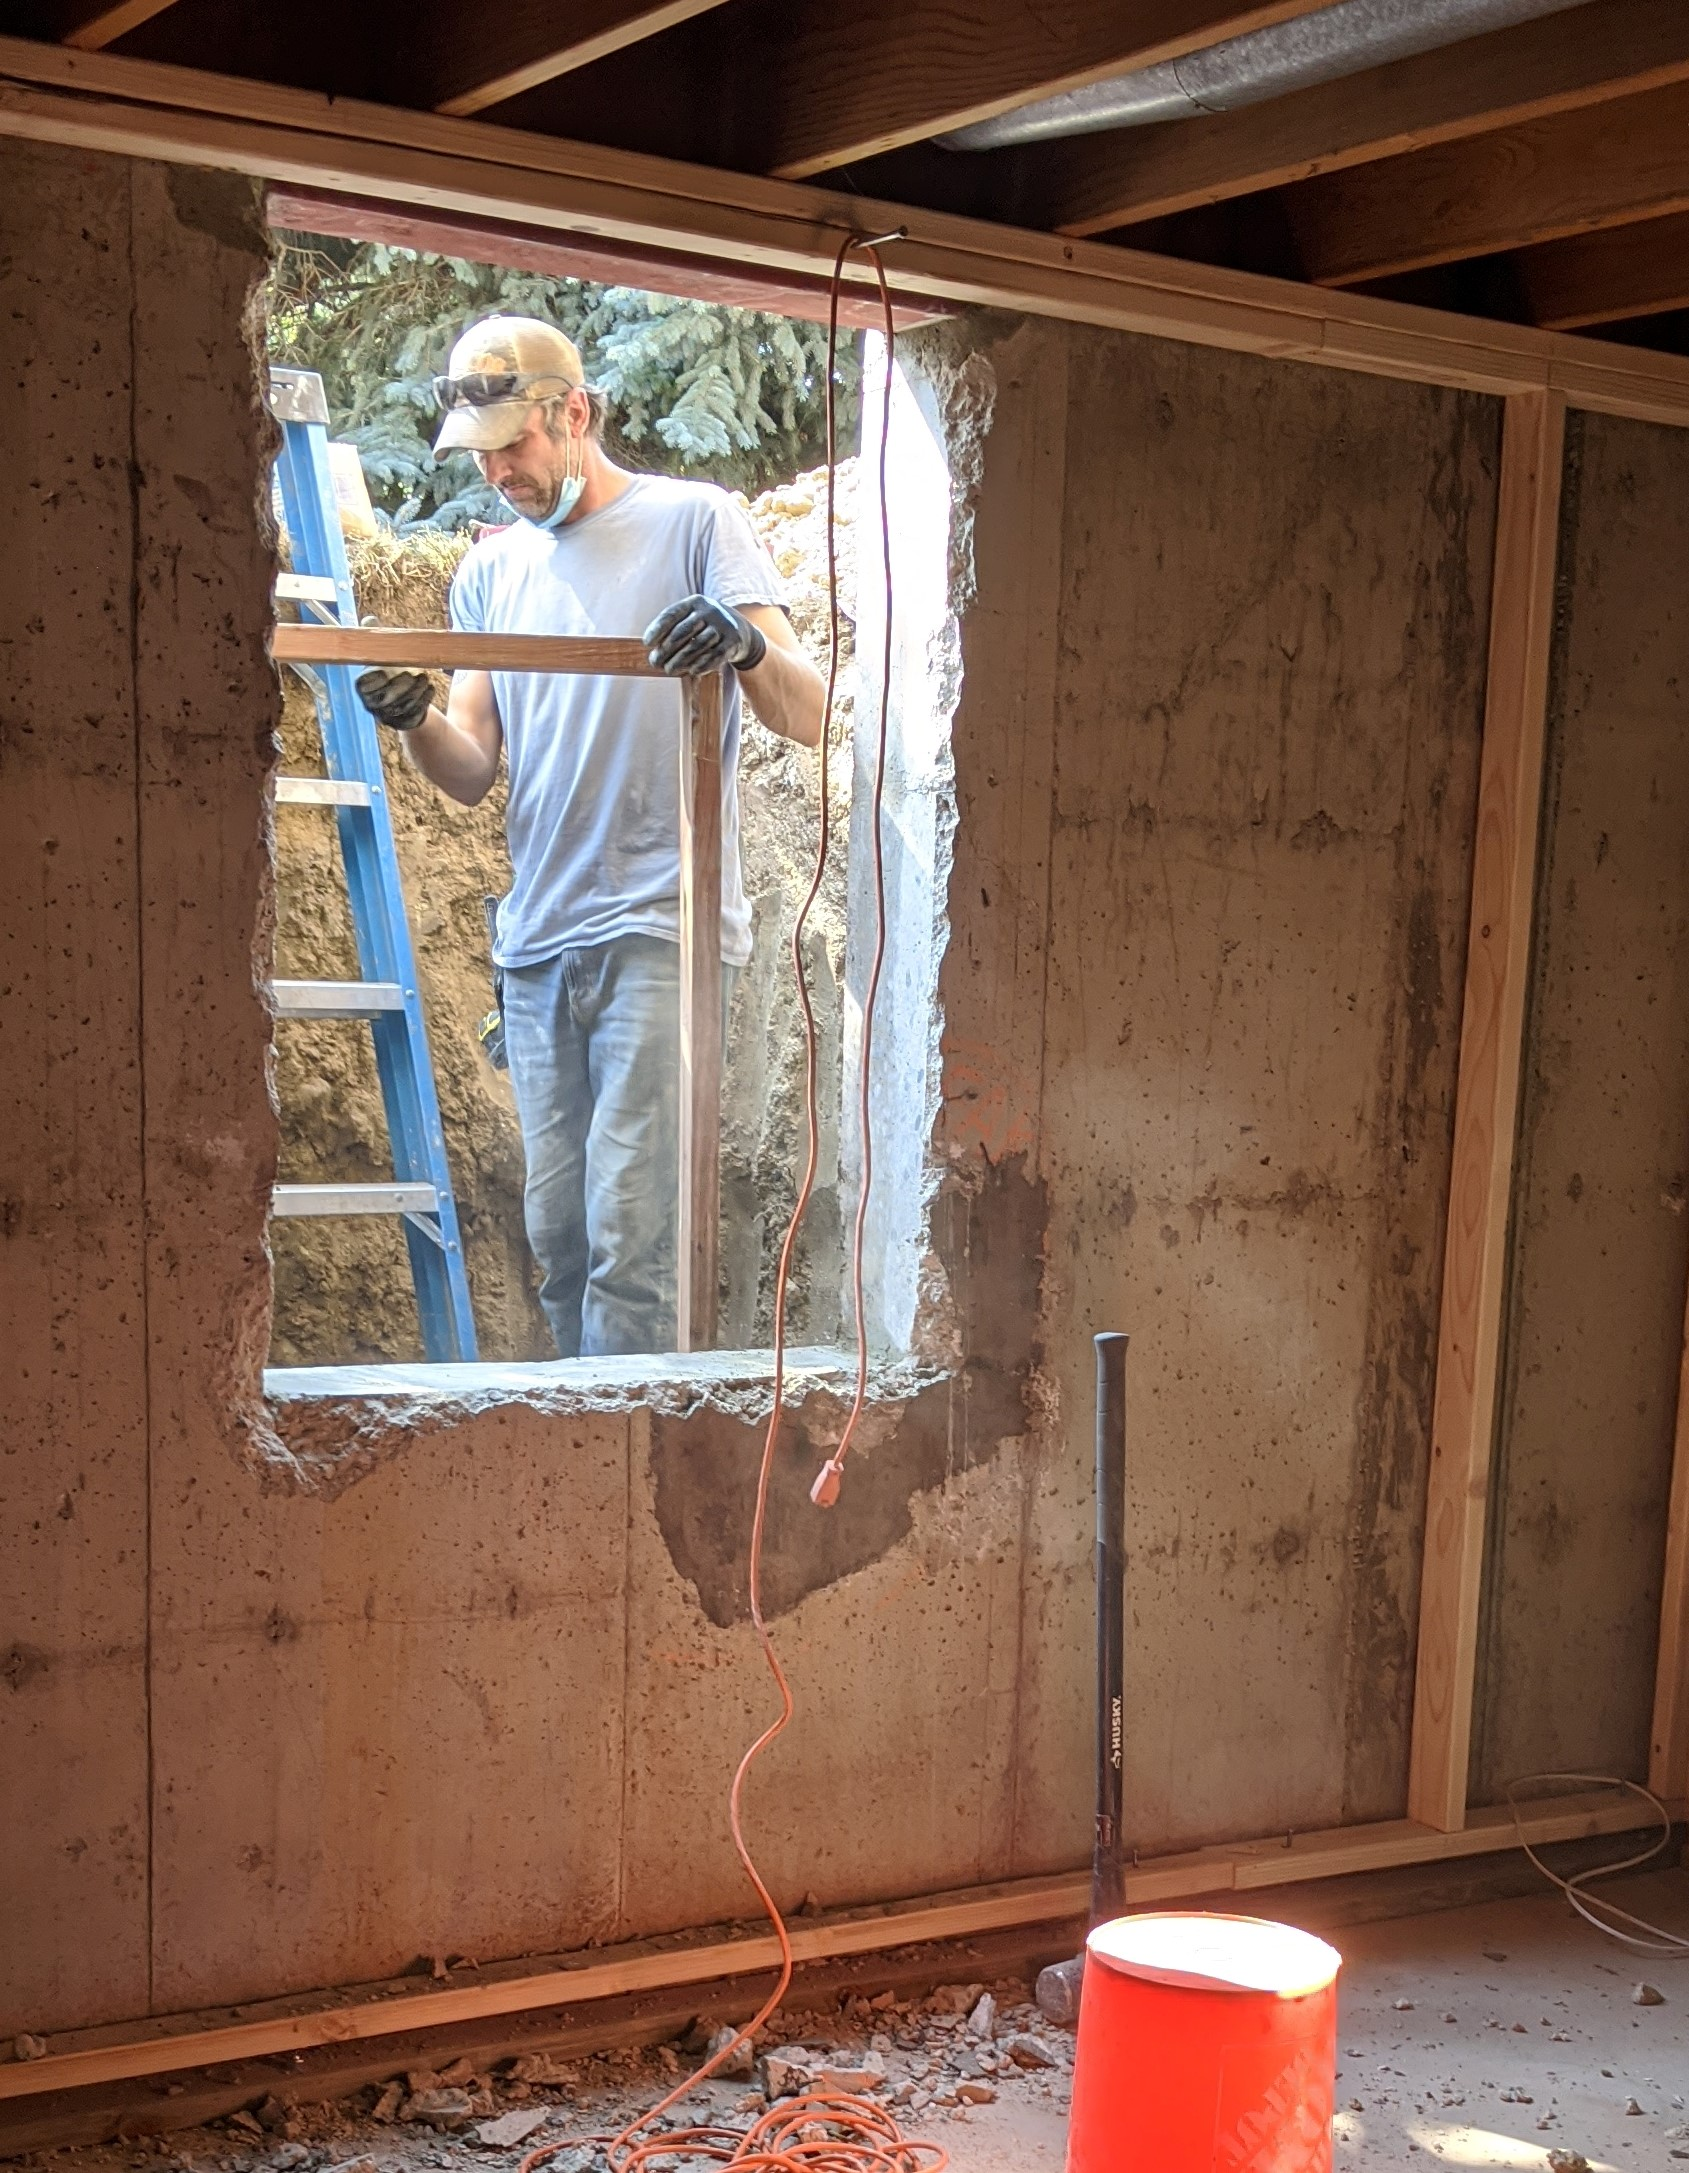 """IN PROGRESS: After the 9 ½"""" thick foundation wall was cut with a concrete saw, the center of the hole was knocked out with a sledgehammer. Then, a frame was added to structurally reinforce the hole before the new window is installed."""